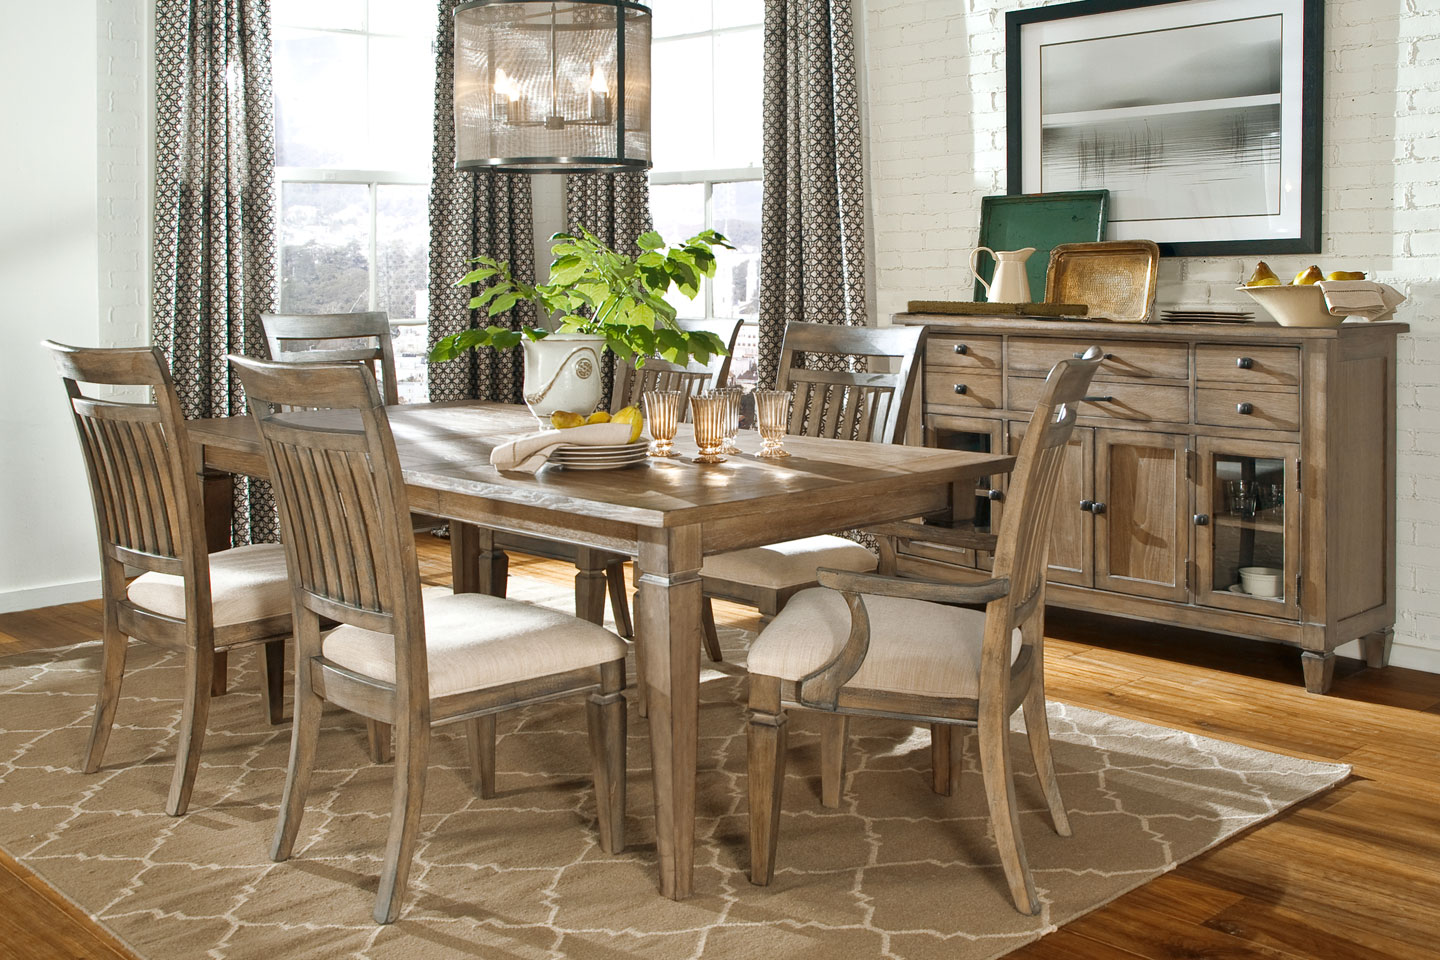 Rustic Formal Dining Room Furniture